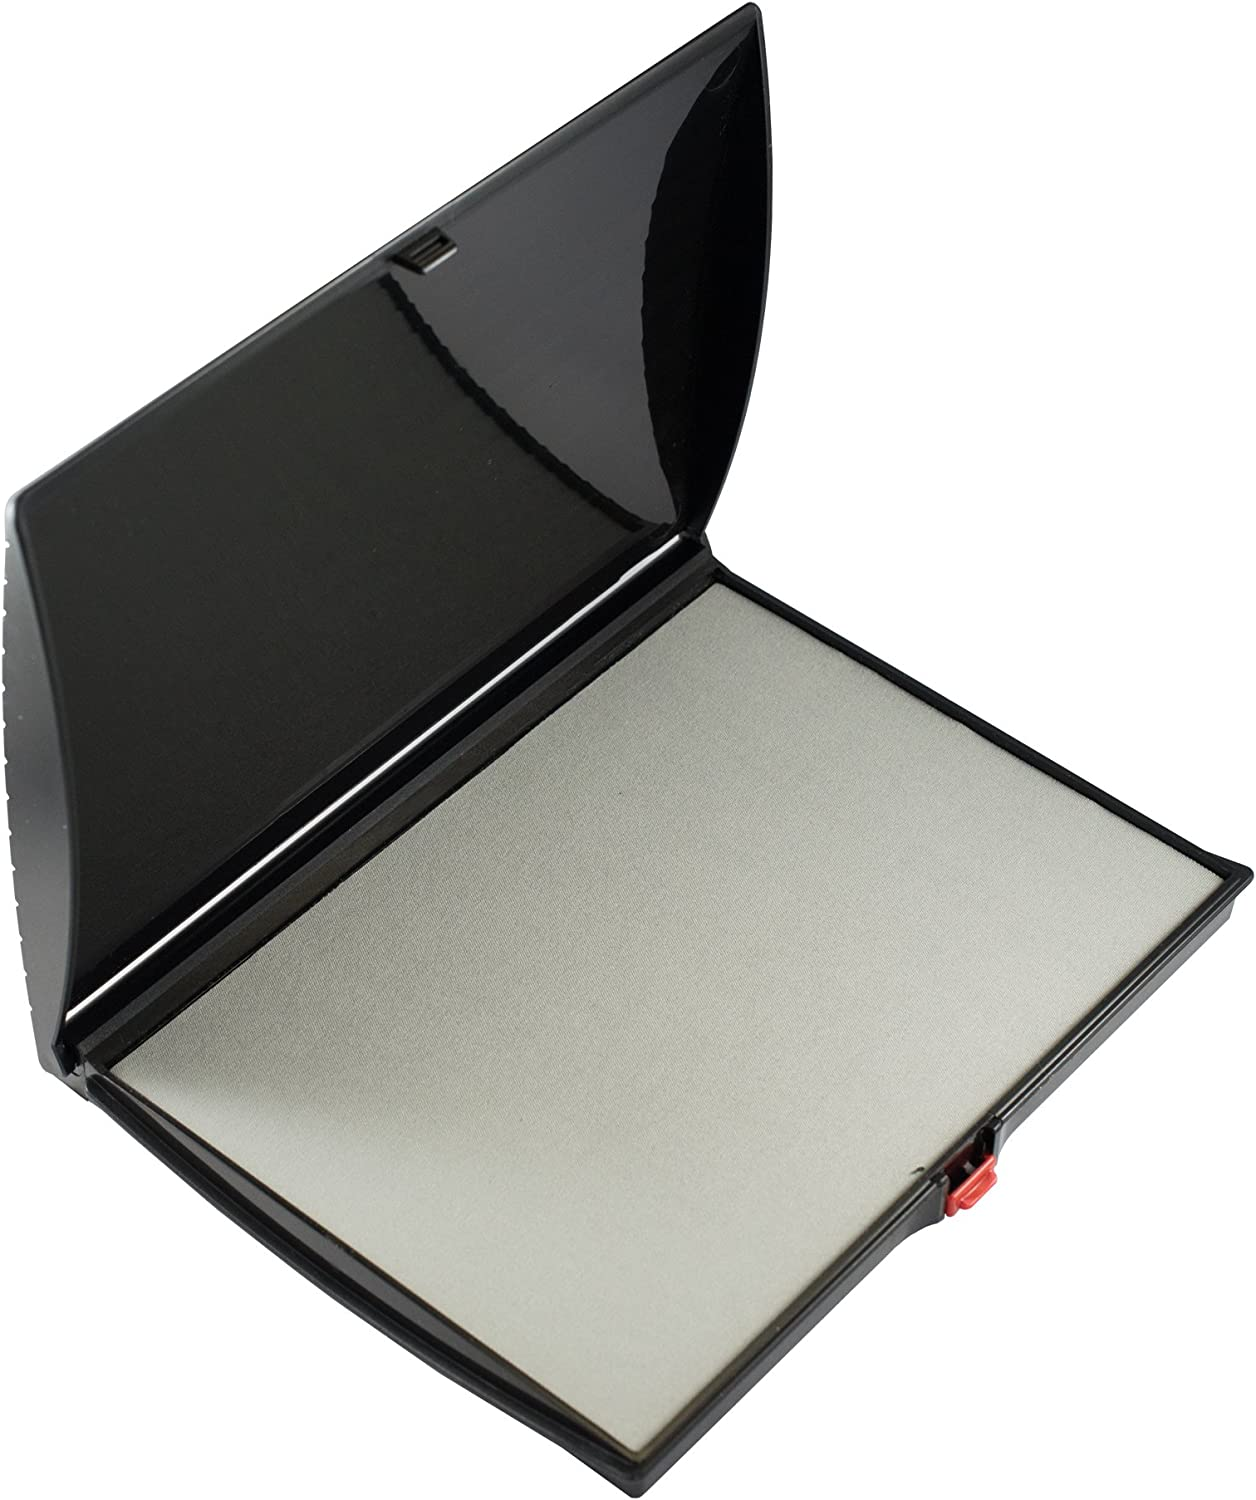 Shiny AS-SHI0940209 Large Dry Stamp Pad, Felt Pad, Ready for Inking, Plastic Cover, S4, 5